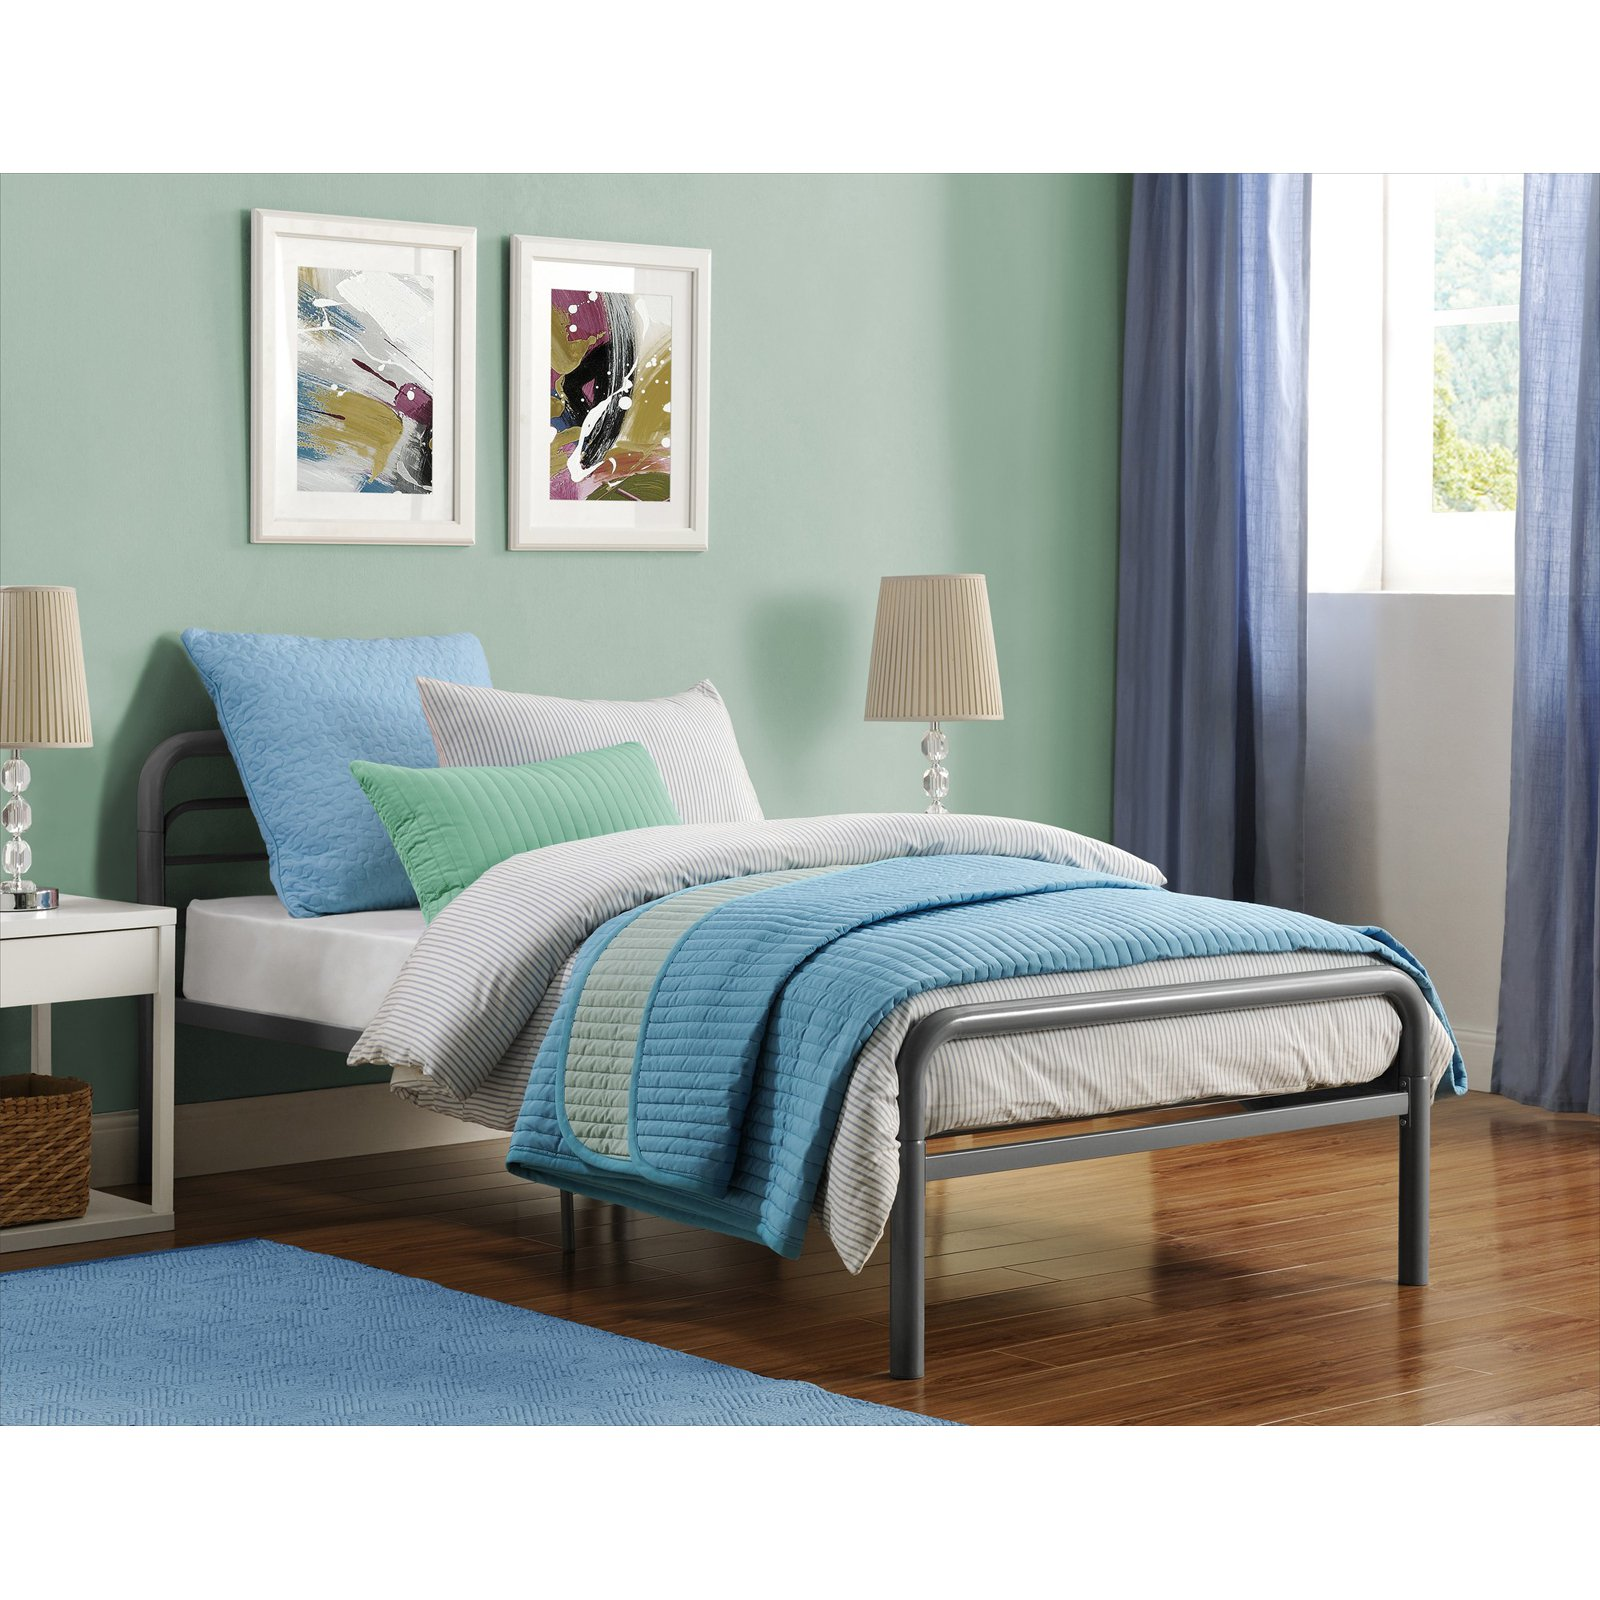 DHP Twin Metal Bed Frame, Available in Multiple Colors